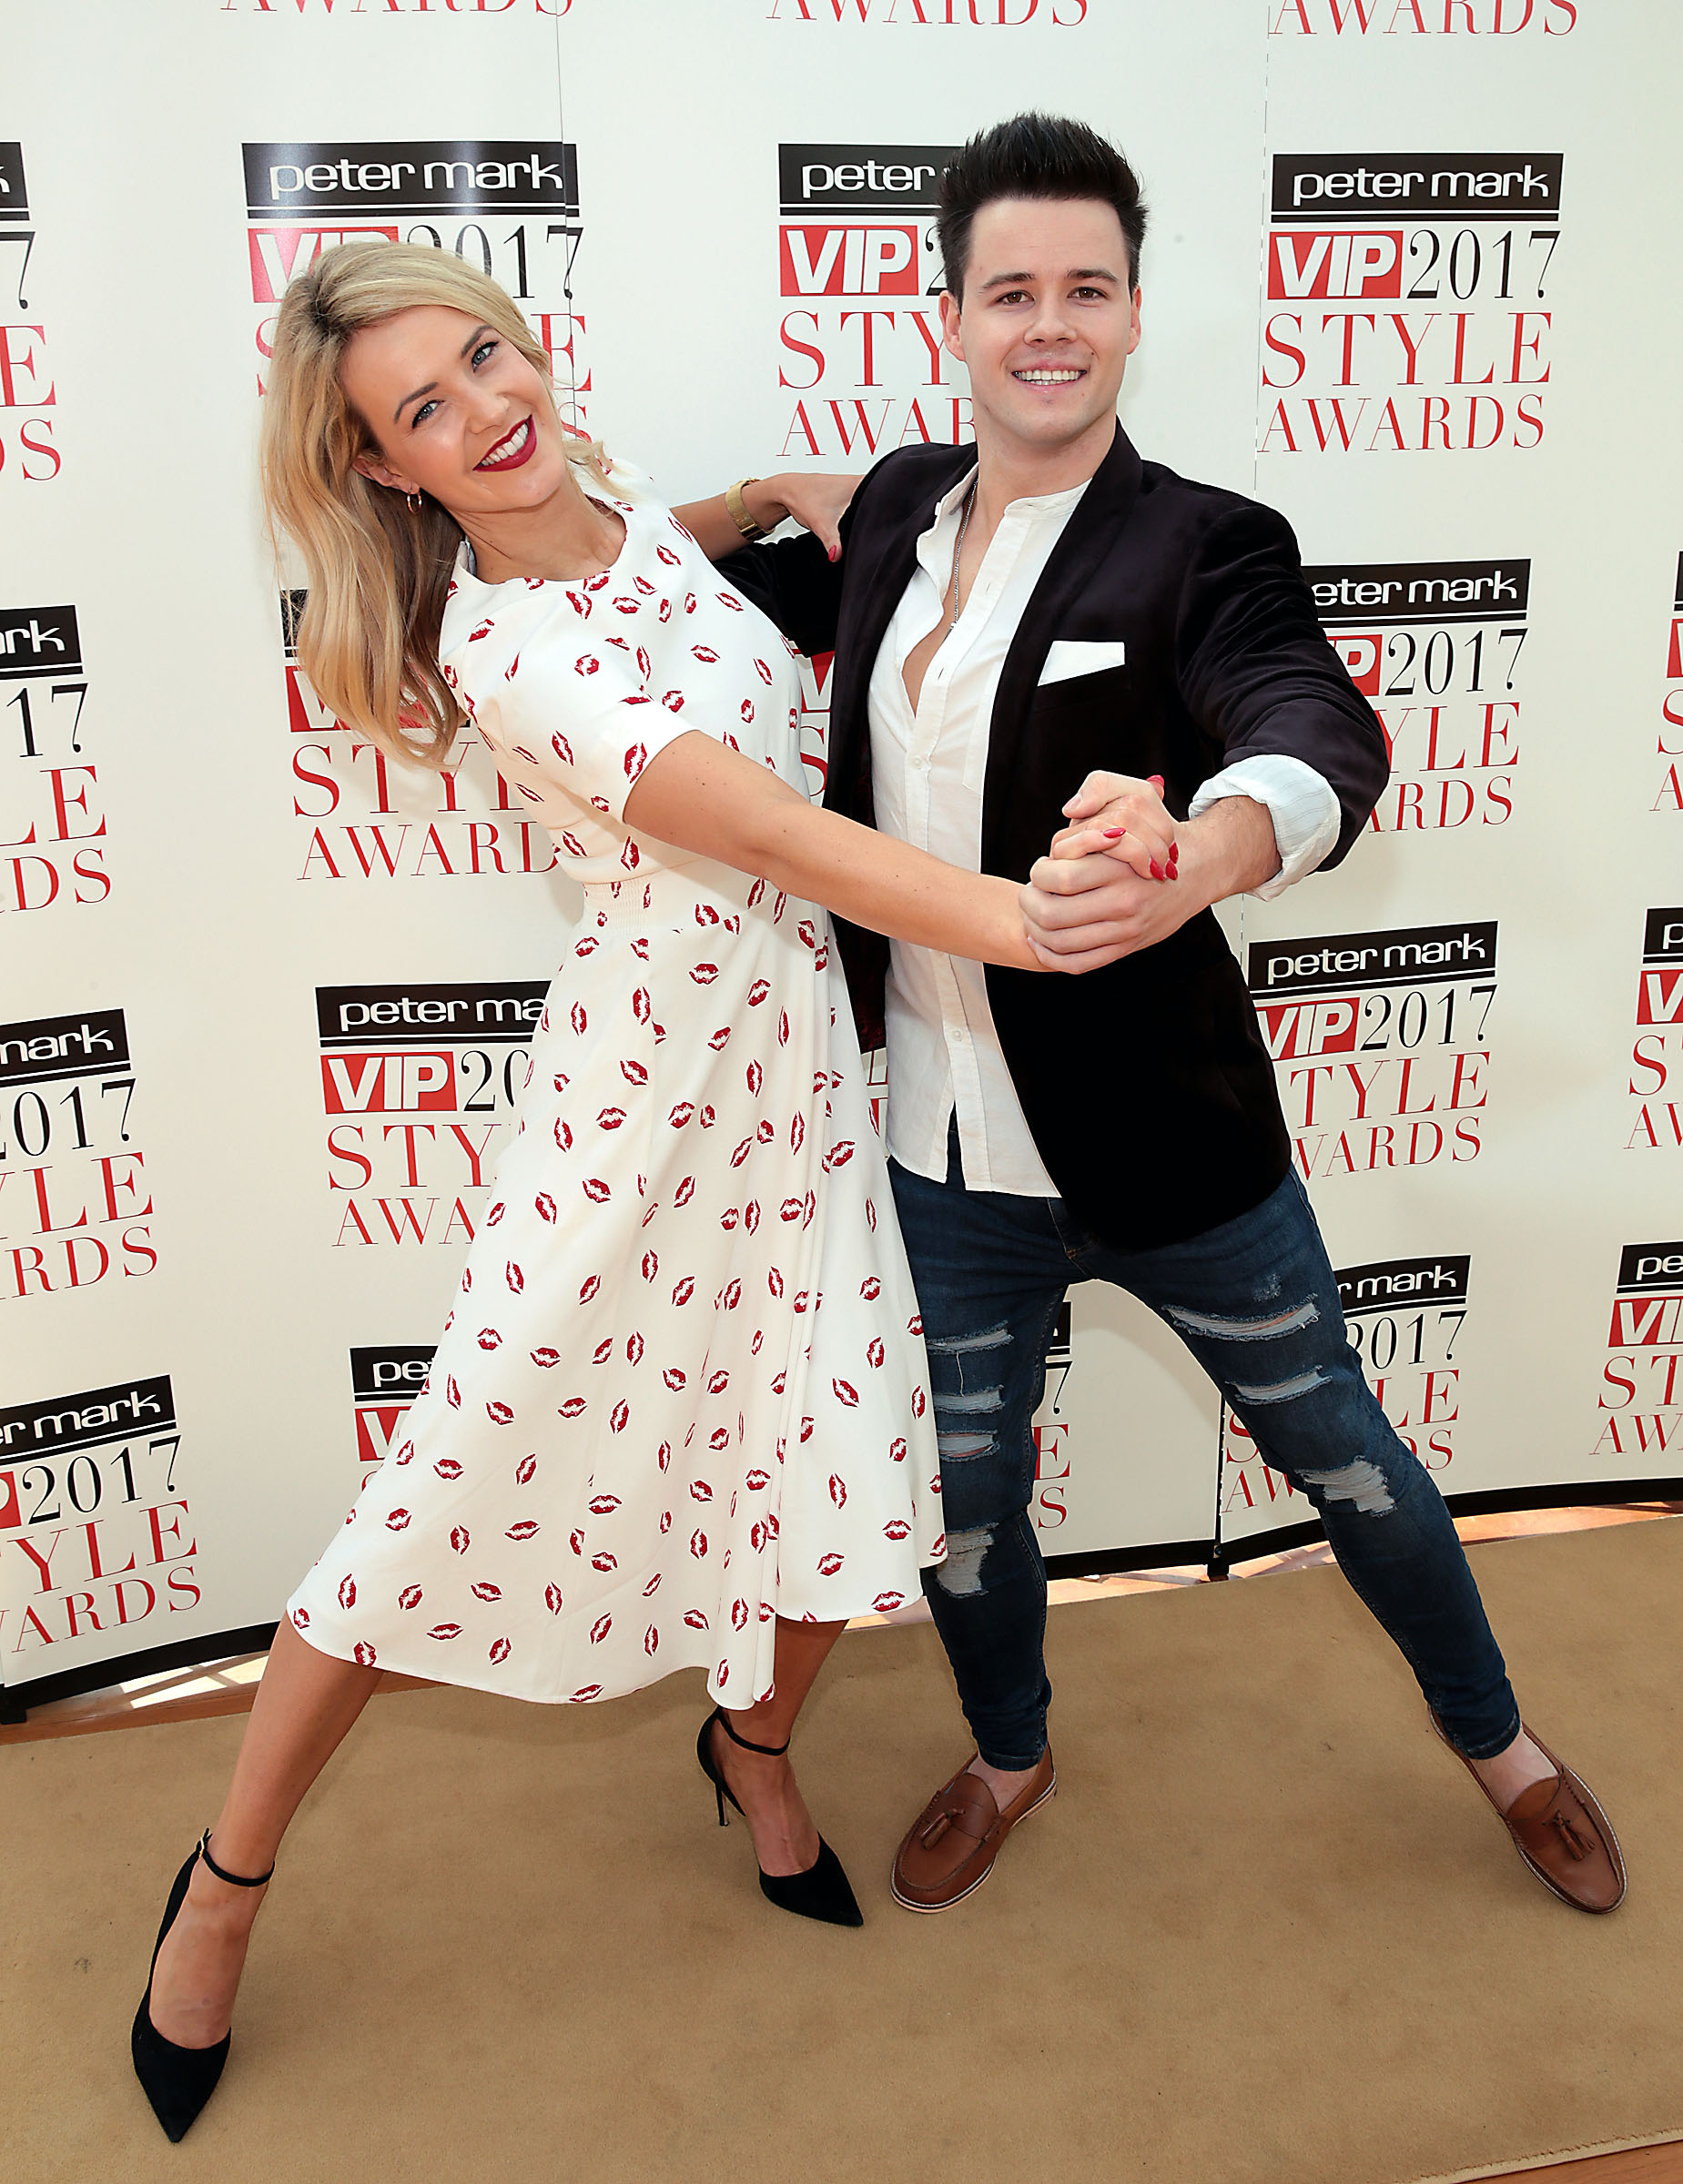 Dayl Cronin and Aoibhin Garrihy were practising their dance moves